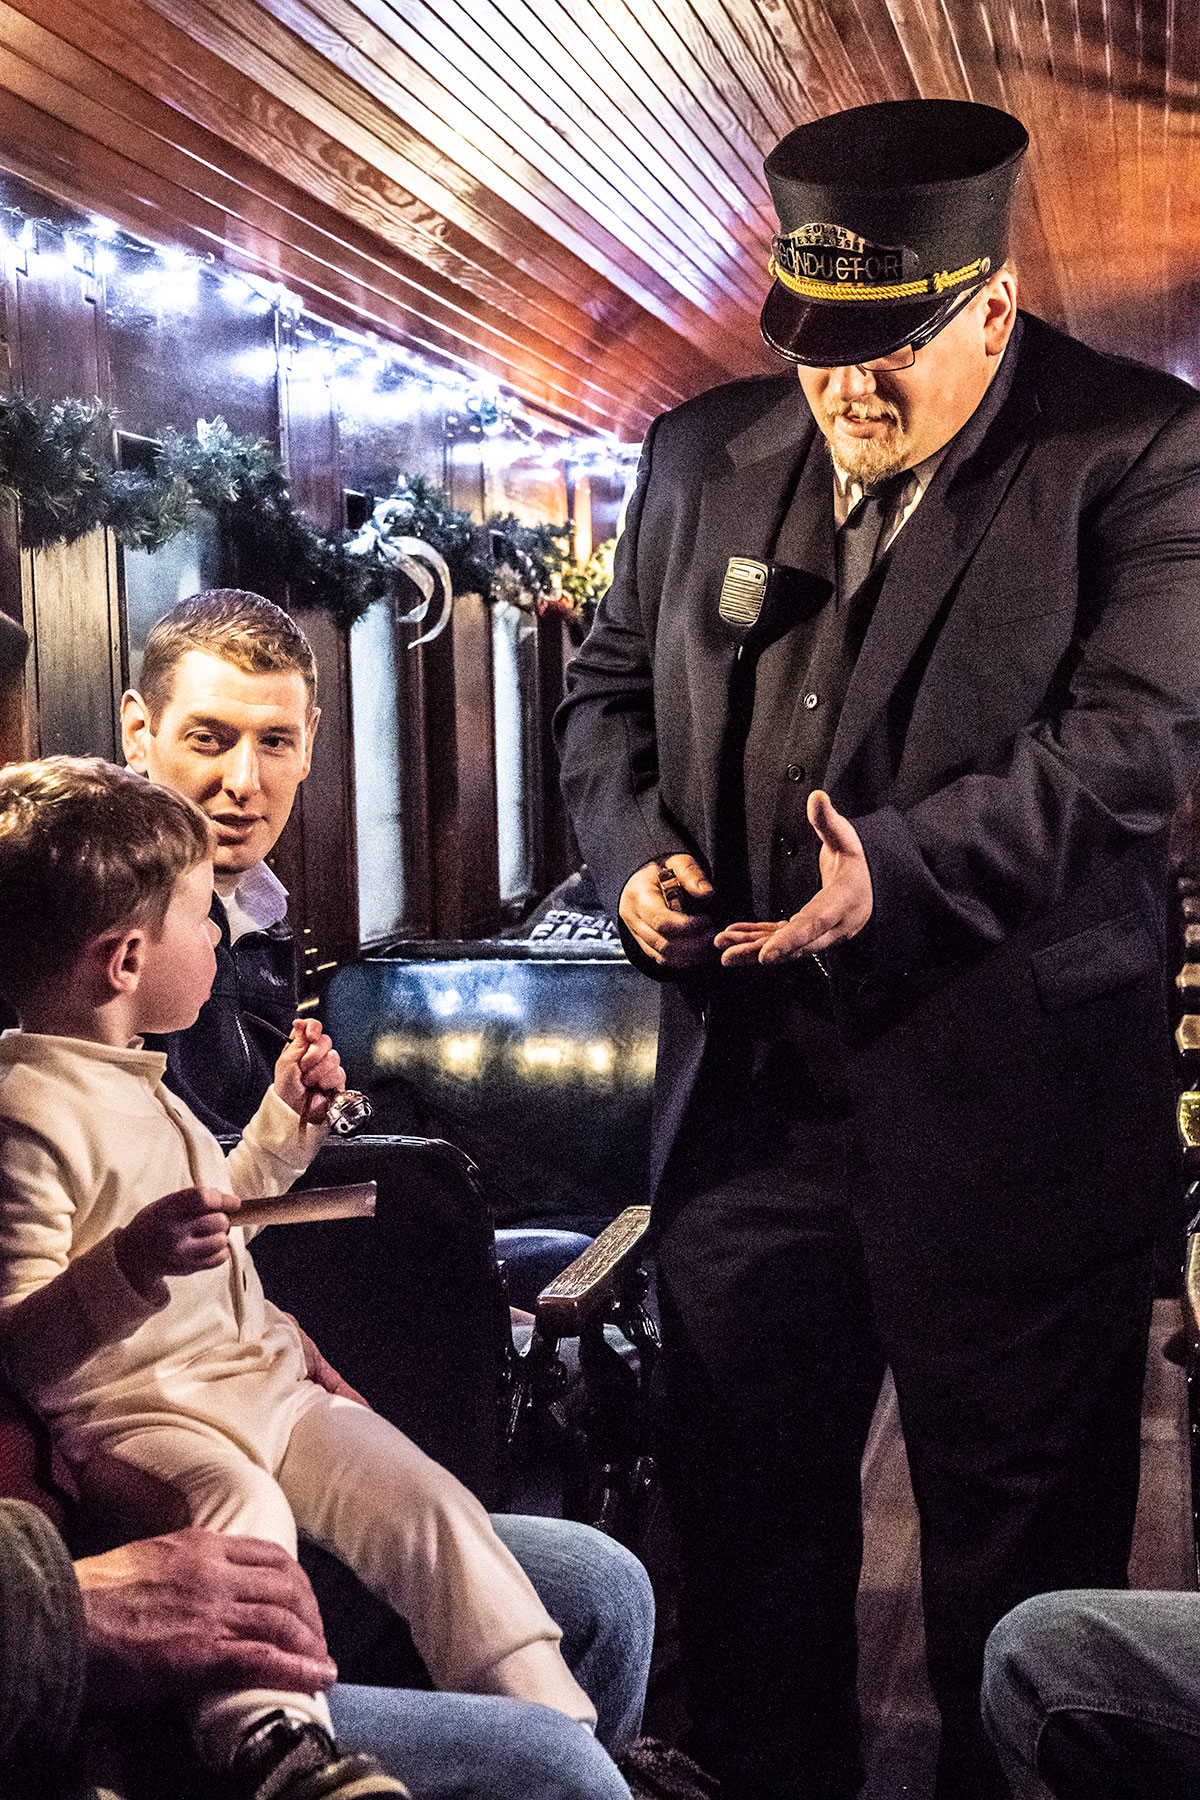 Metting-the-Conductor-of-The-Polar-Express-Maine